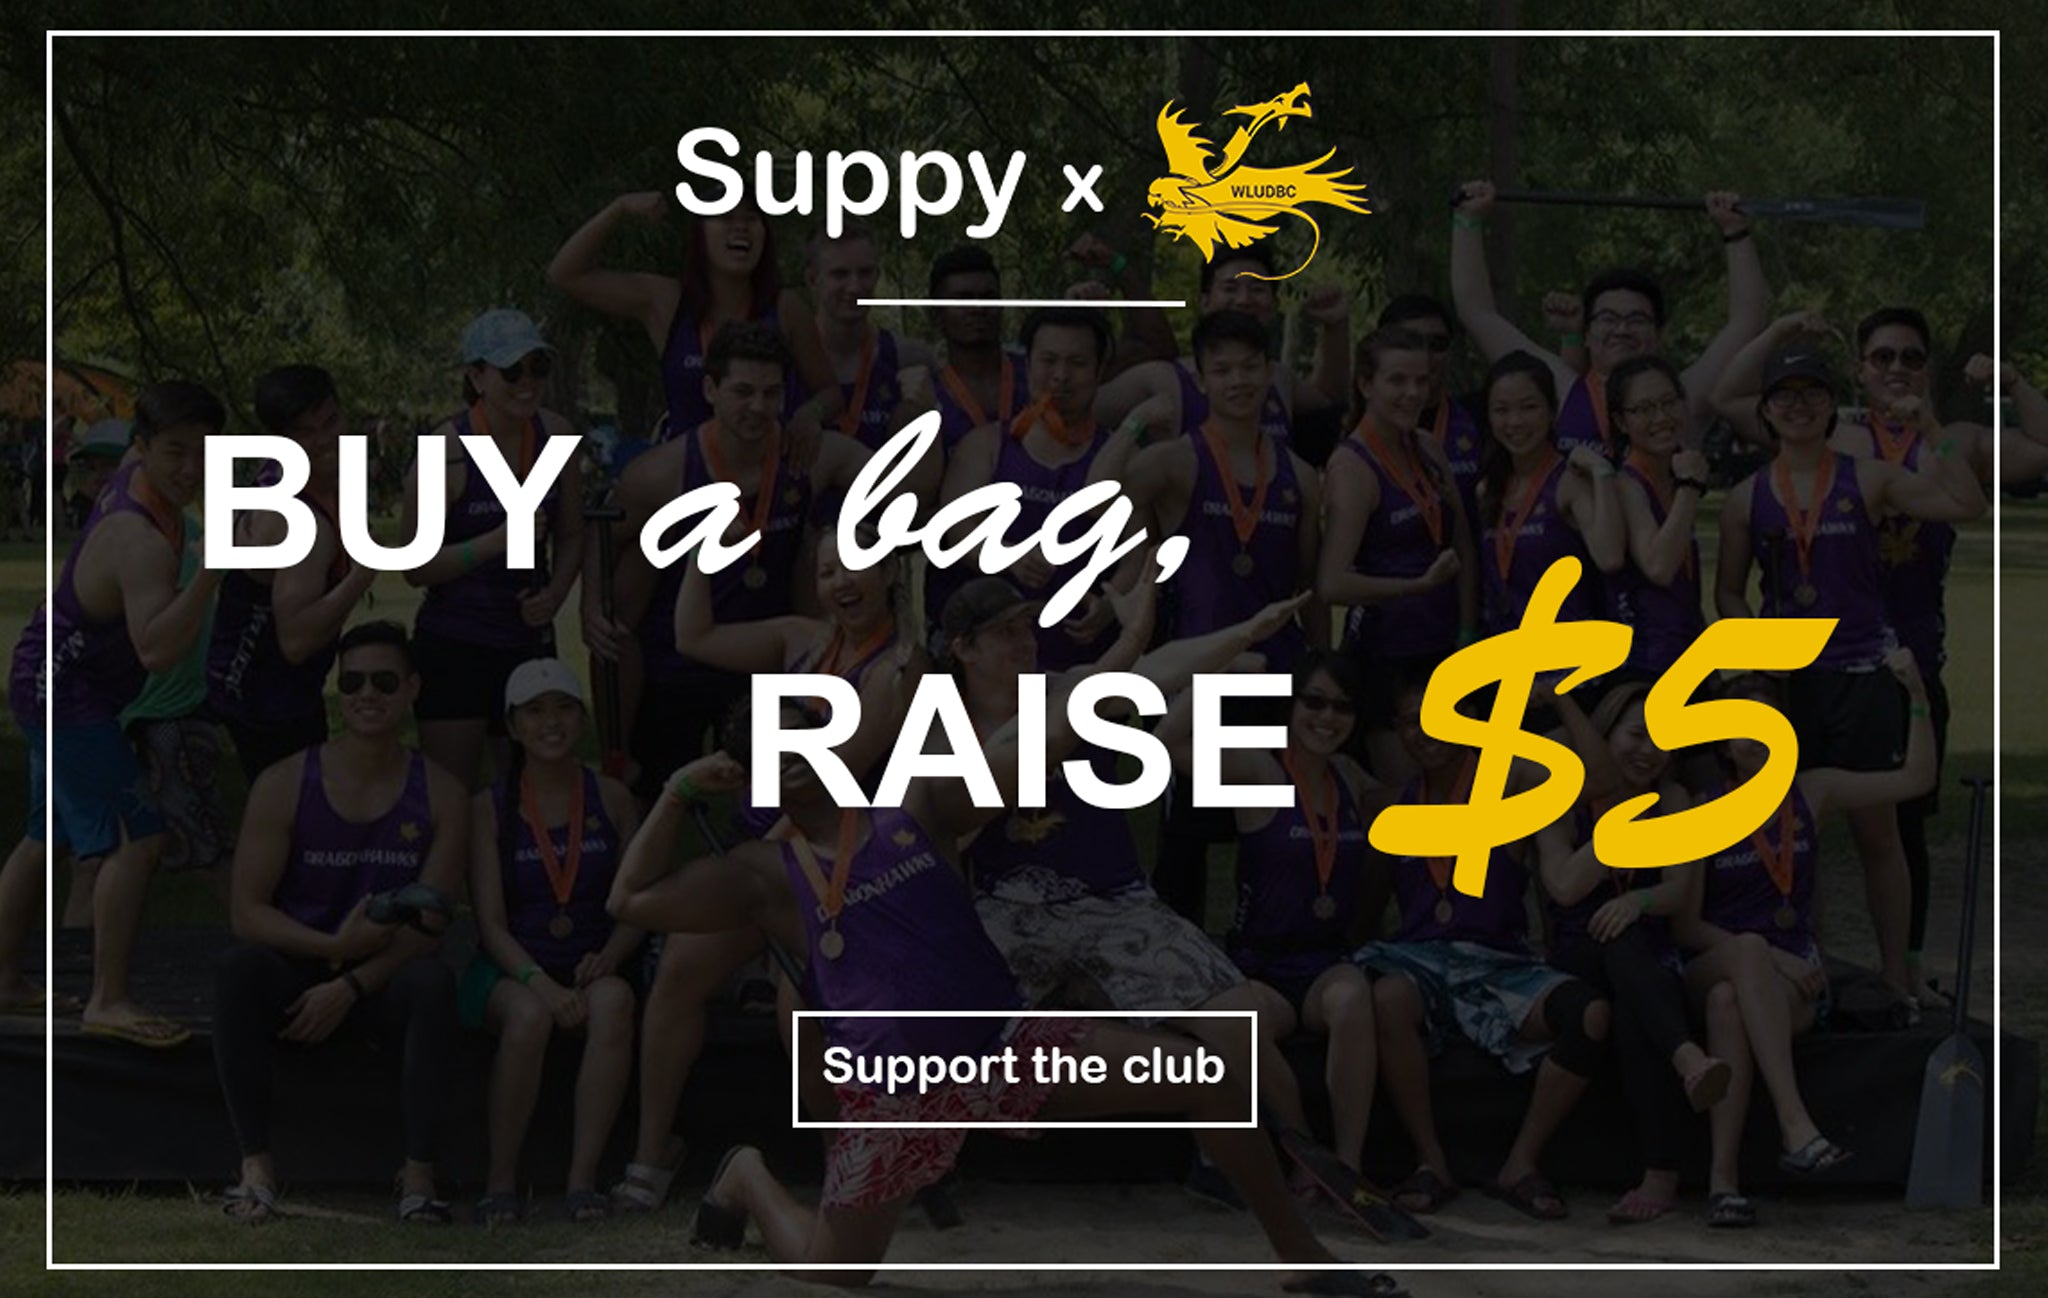 Suppy x Wilfrid Laurier University Dragon Boat Club